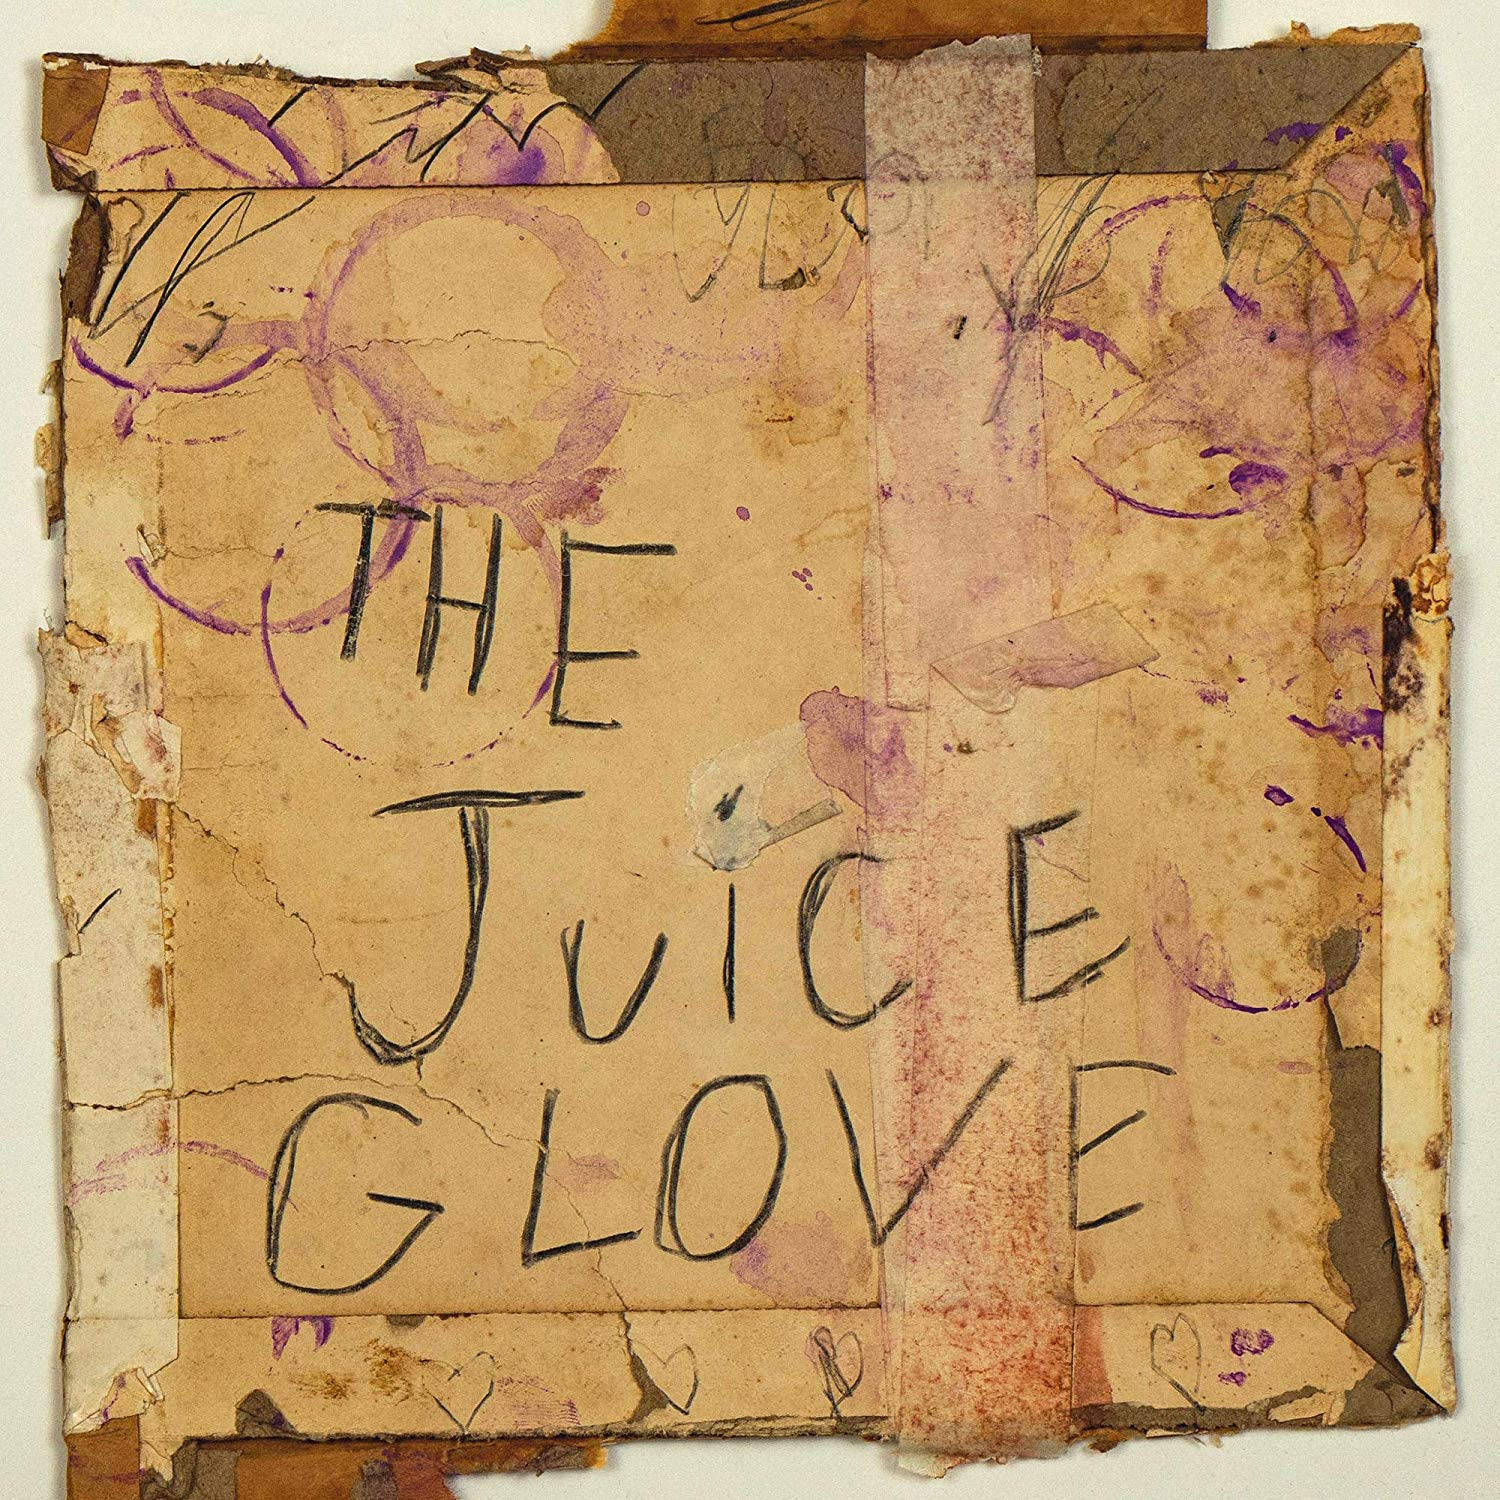 Image of The Juice / G. Love & Special Sauce